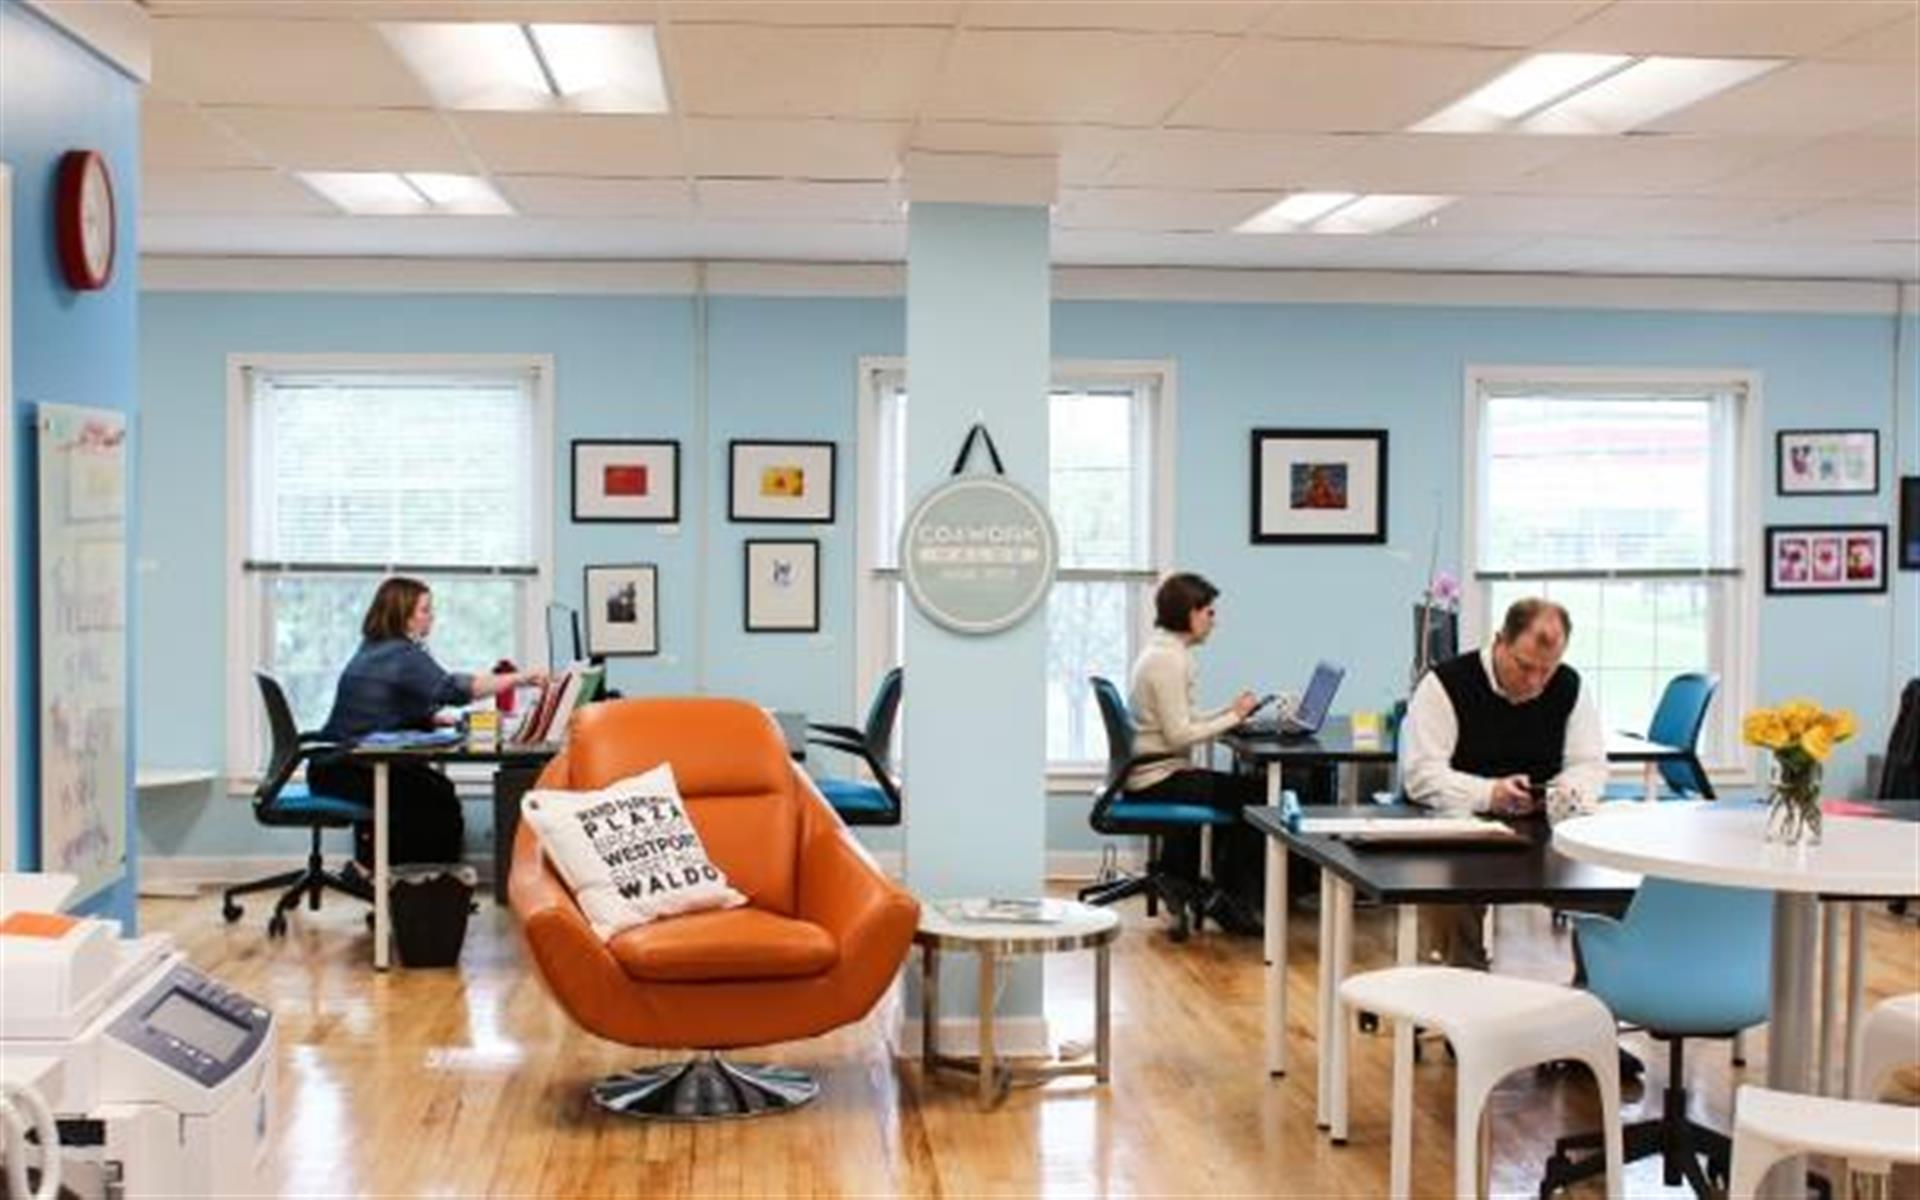 Cowork Waldo - Flex Desk Full-Time